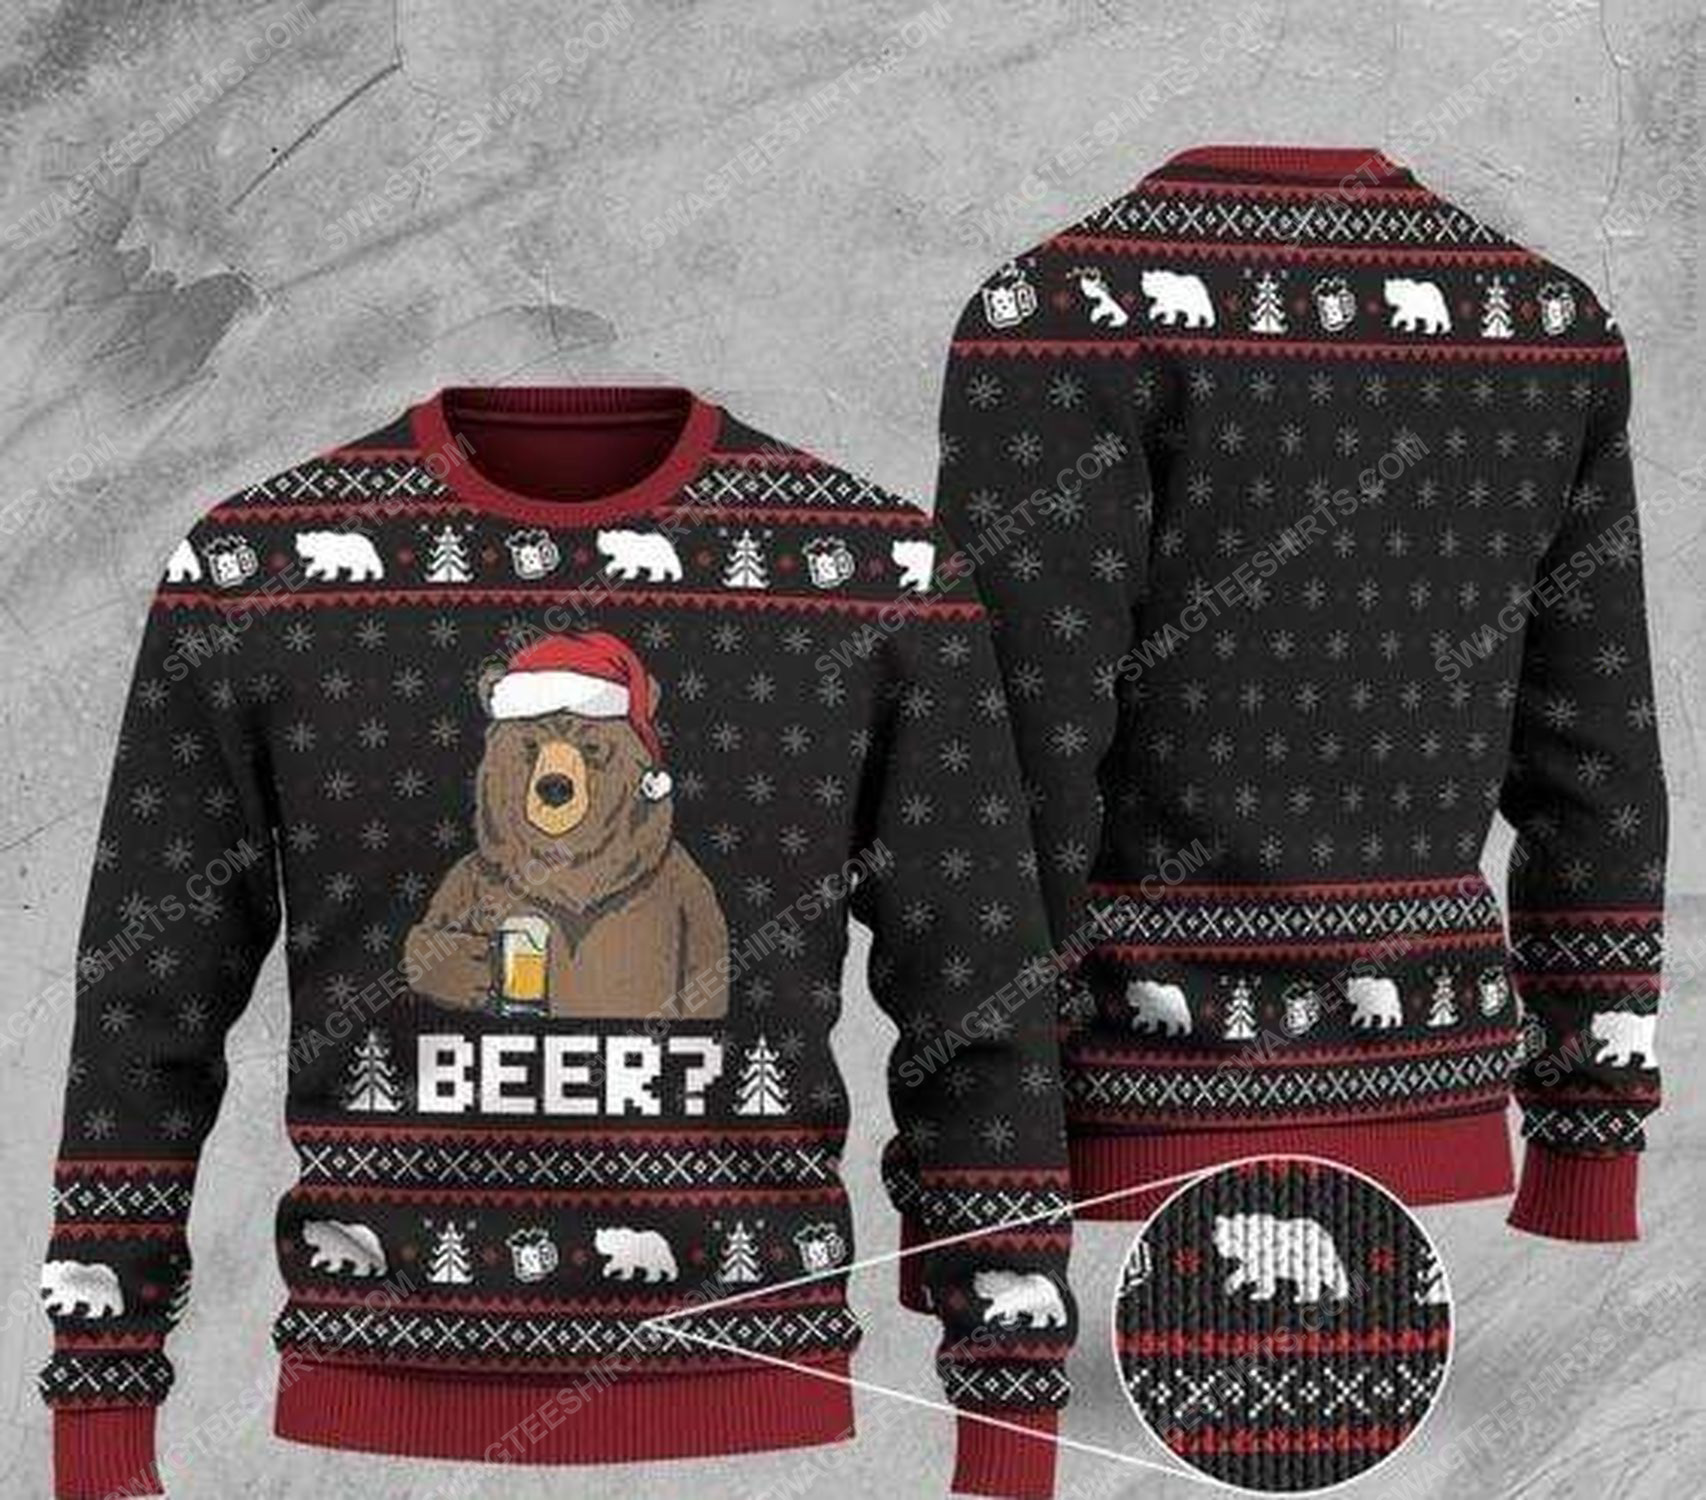 Bear with beer all over print ugly christmas sweater 1 - Copy - Copy